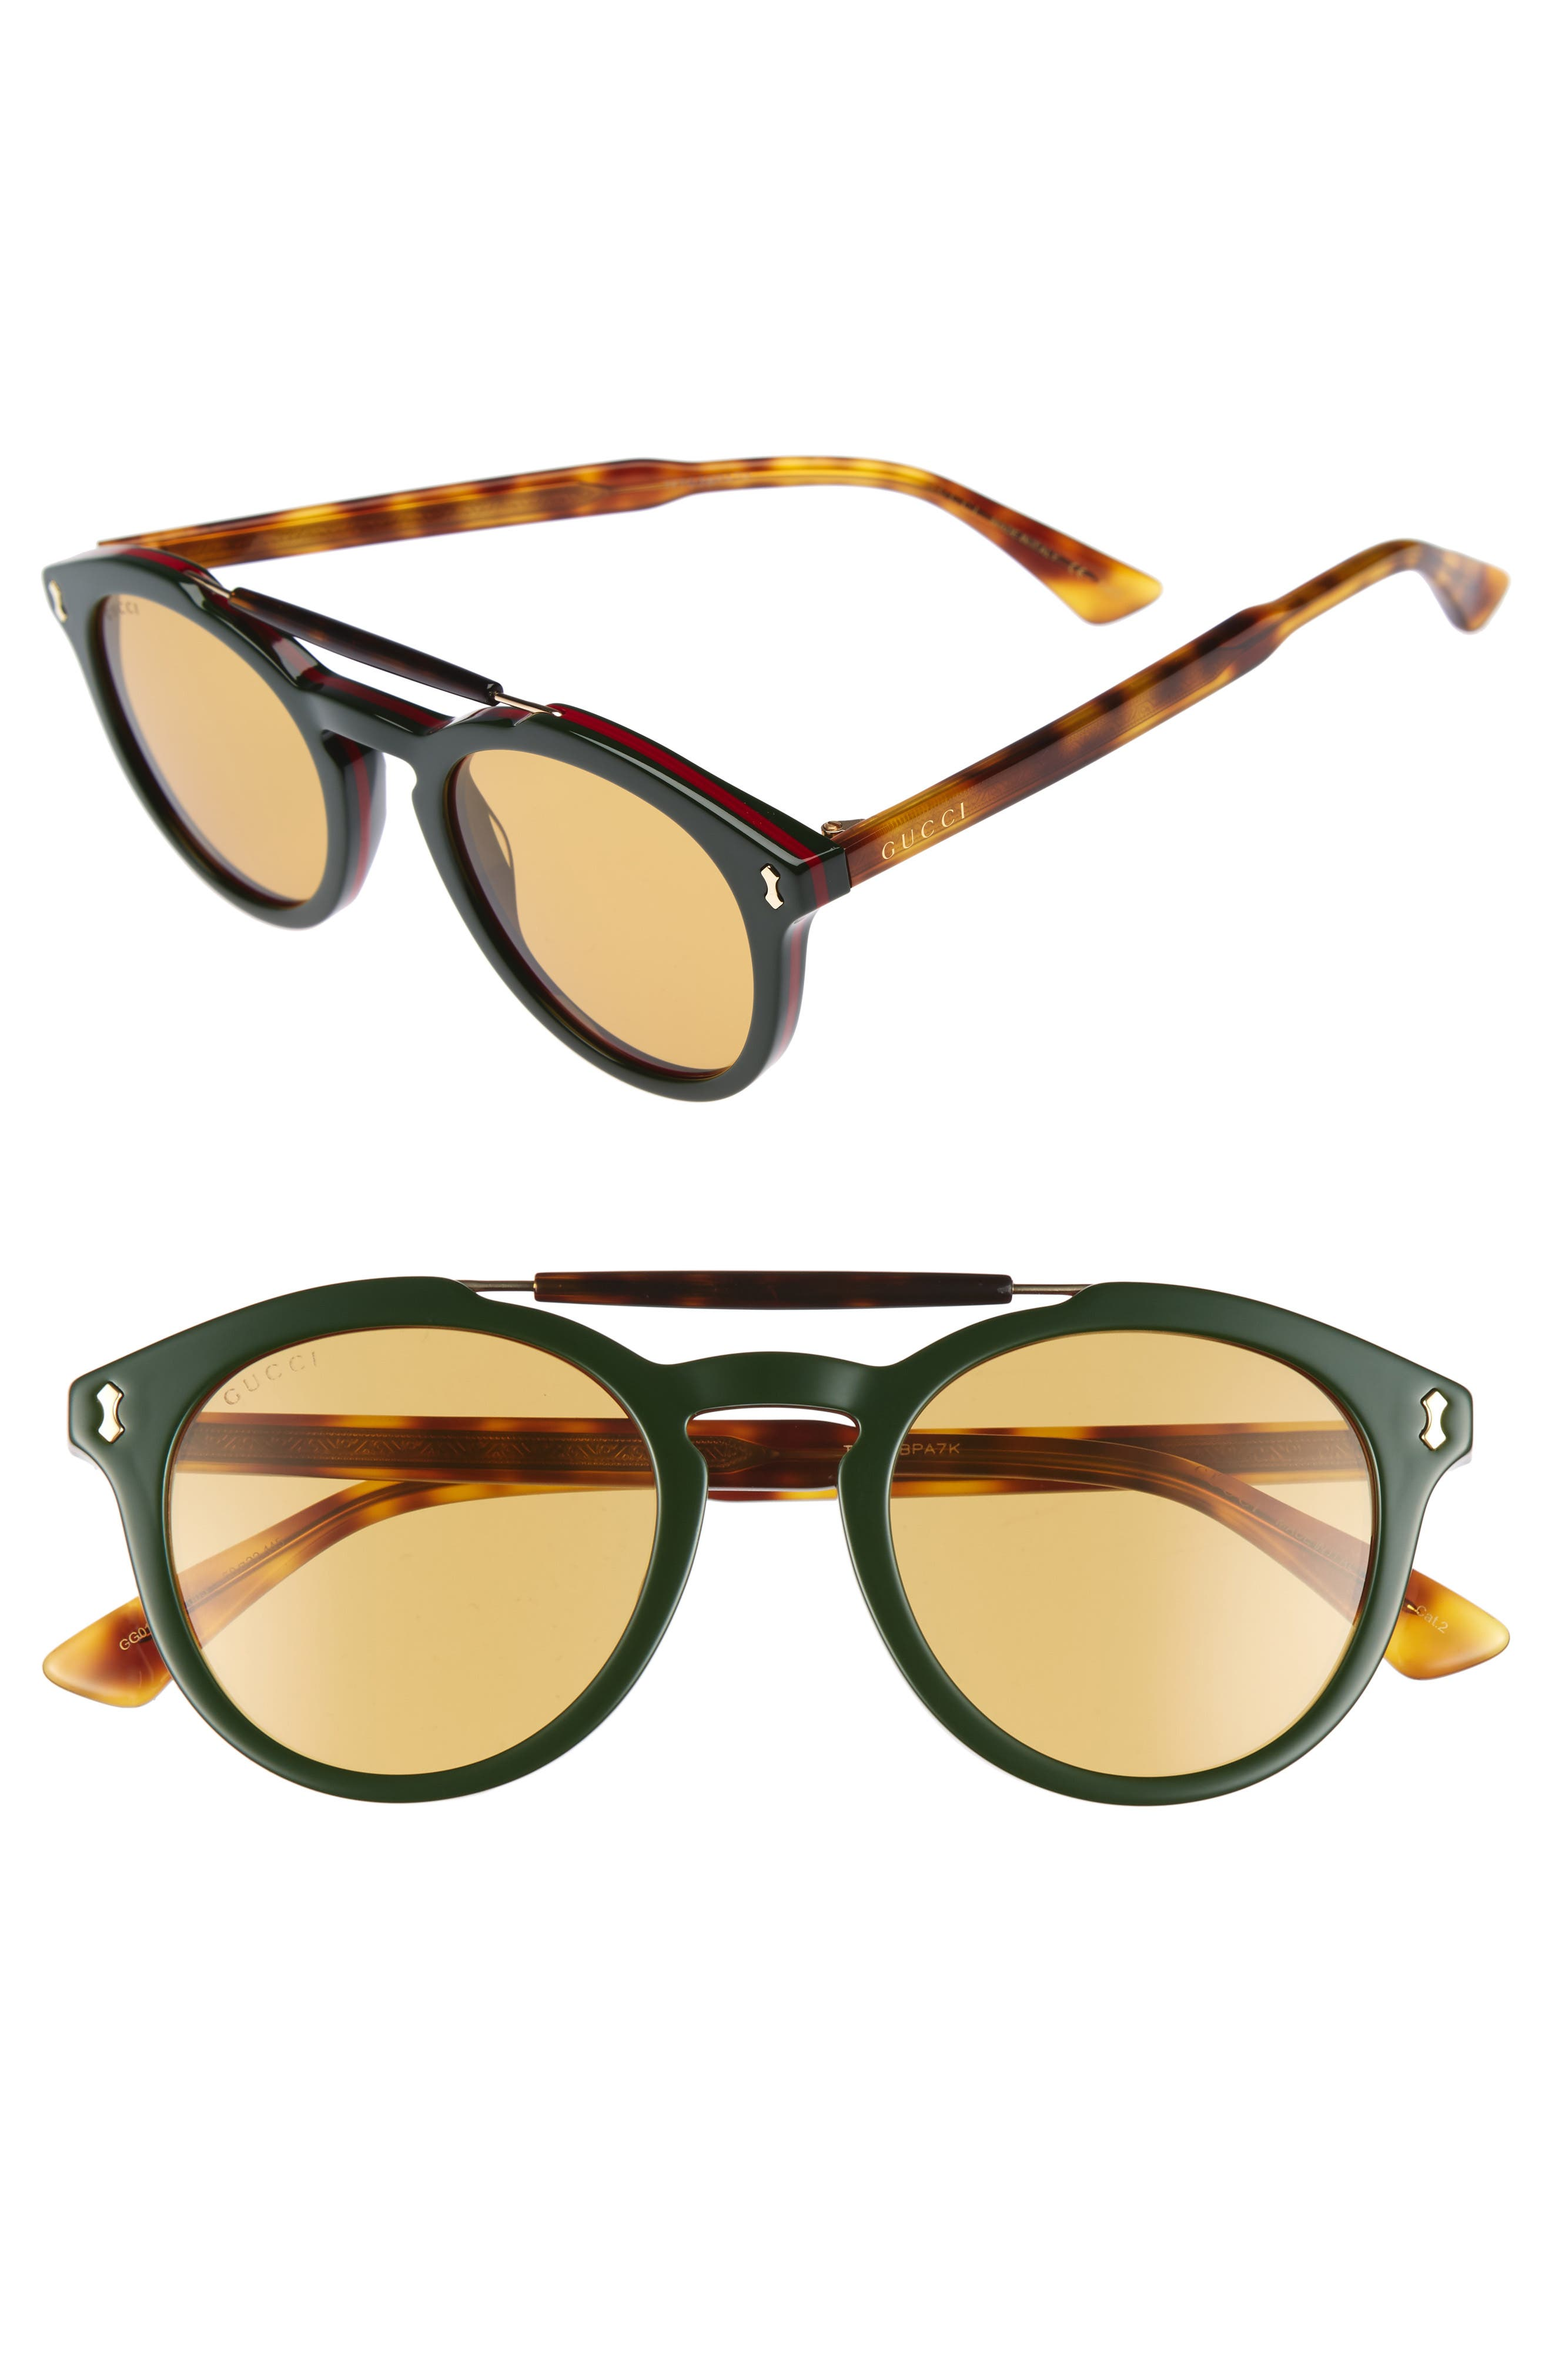 Vintage Pilot 50mm Sunglasses,                         Main,                         color, Green-Red Web/ Nicotine